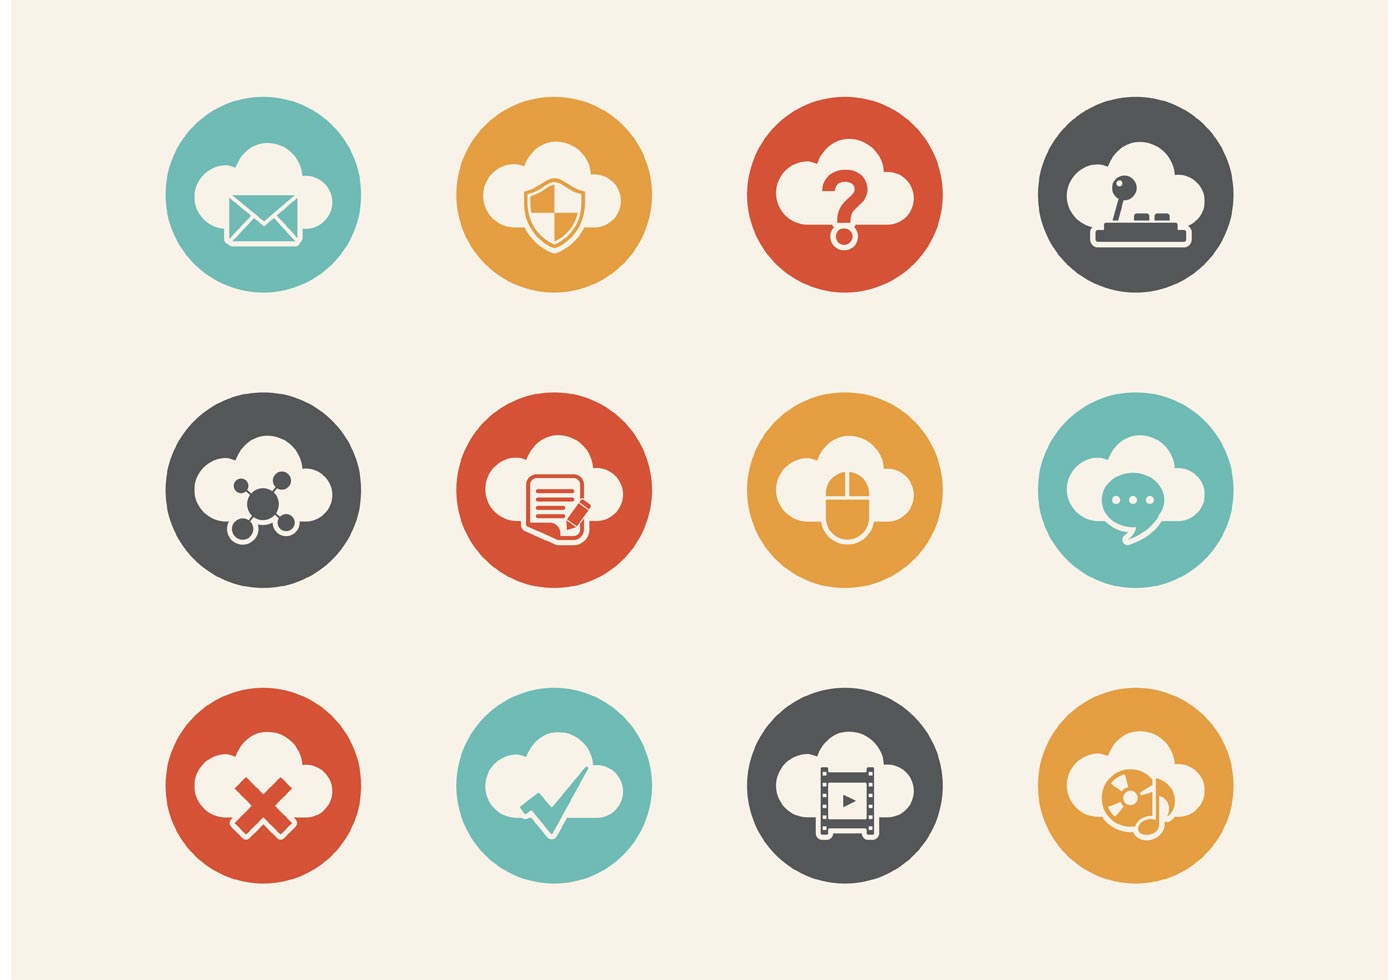 Free Retro Cloud Computing Vector Icons - Download Free ...